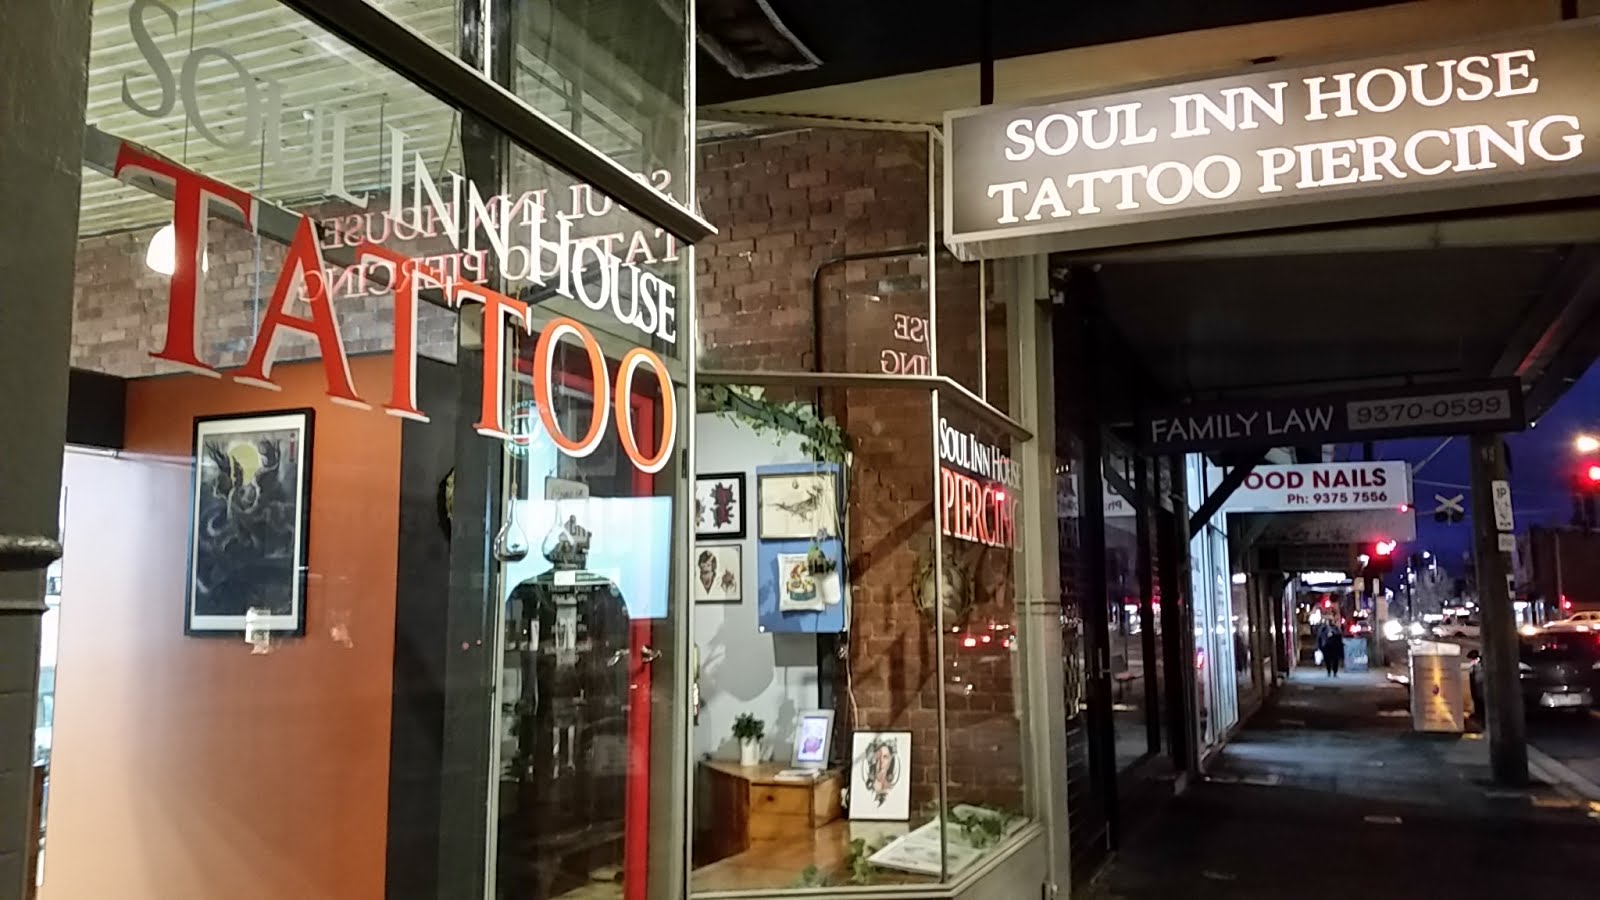 Soul Inn House Tattoo